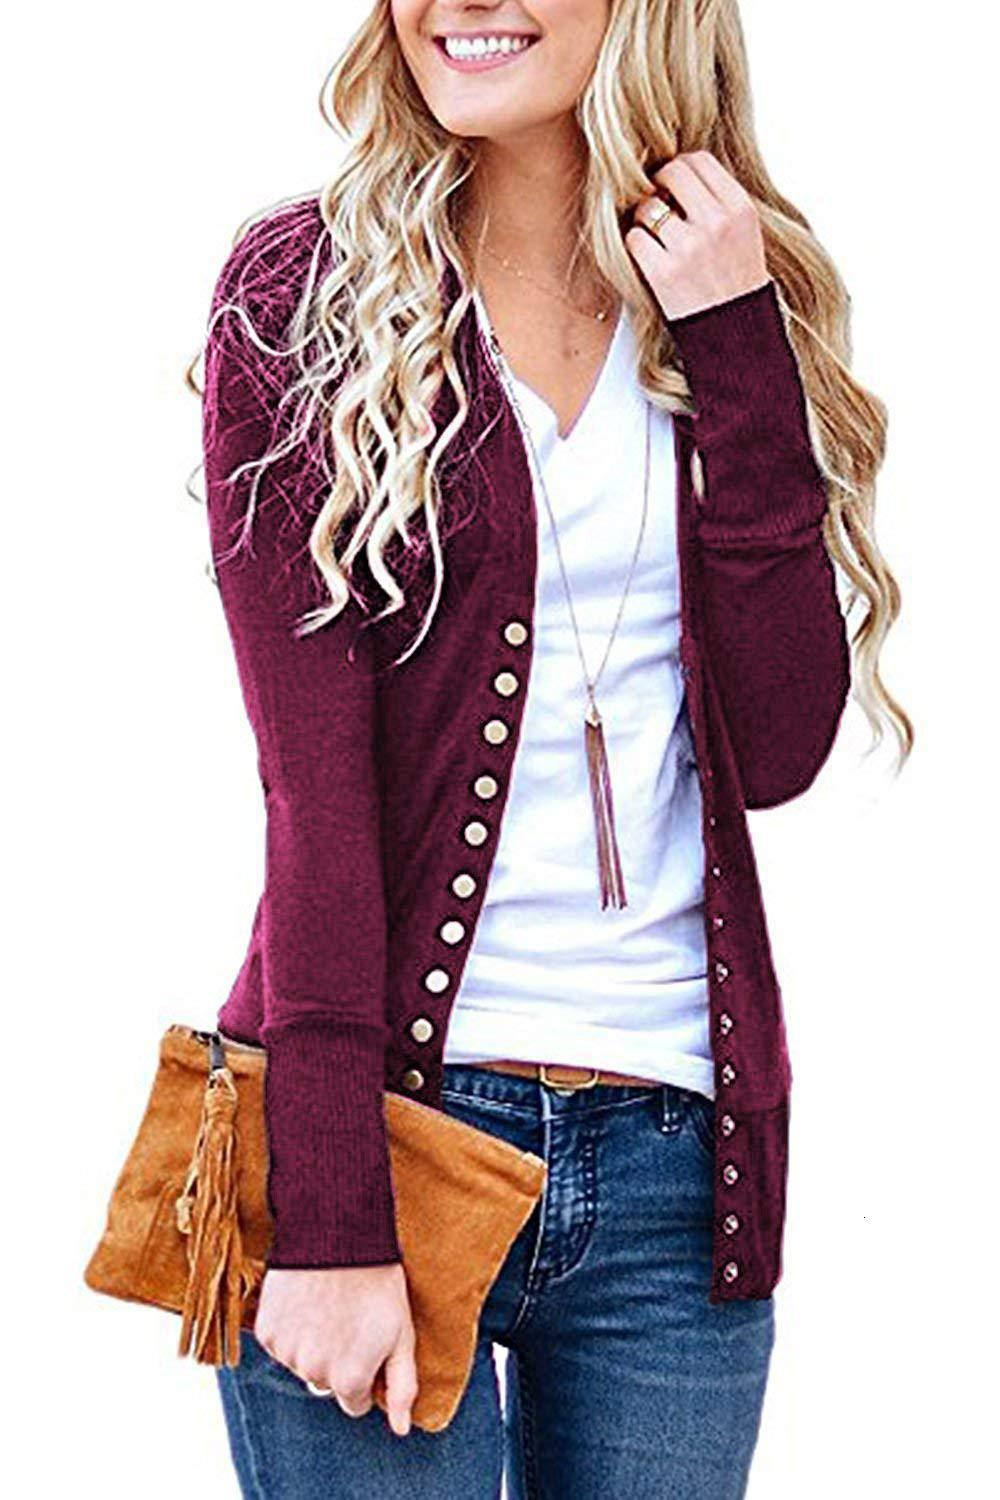 2019 Women Fashion Spring Casual V Neck Long Sleeve Knitted Sweater Button Down Cardigan Tops Outwear Coat